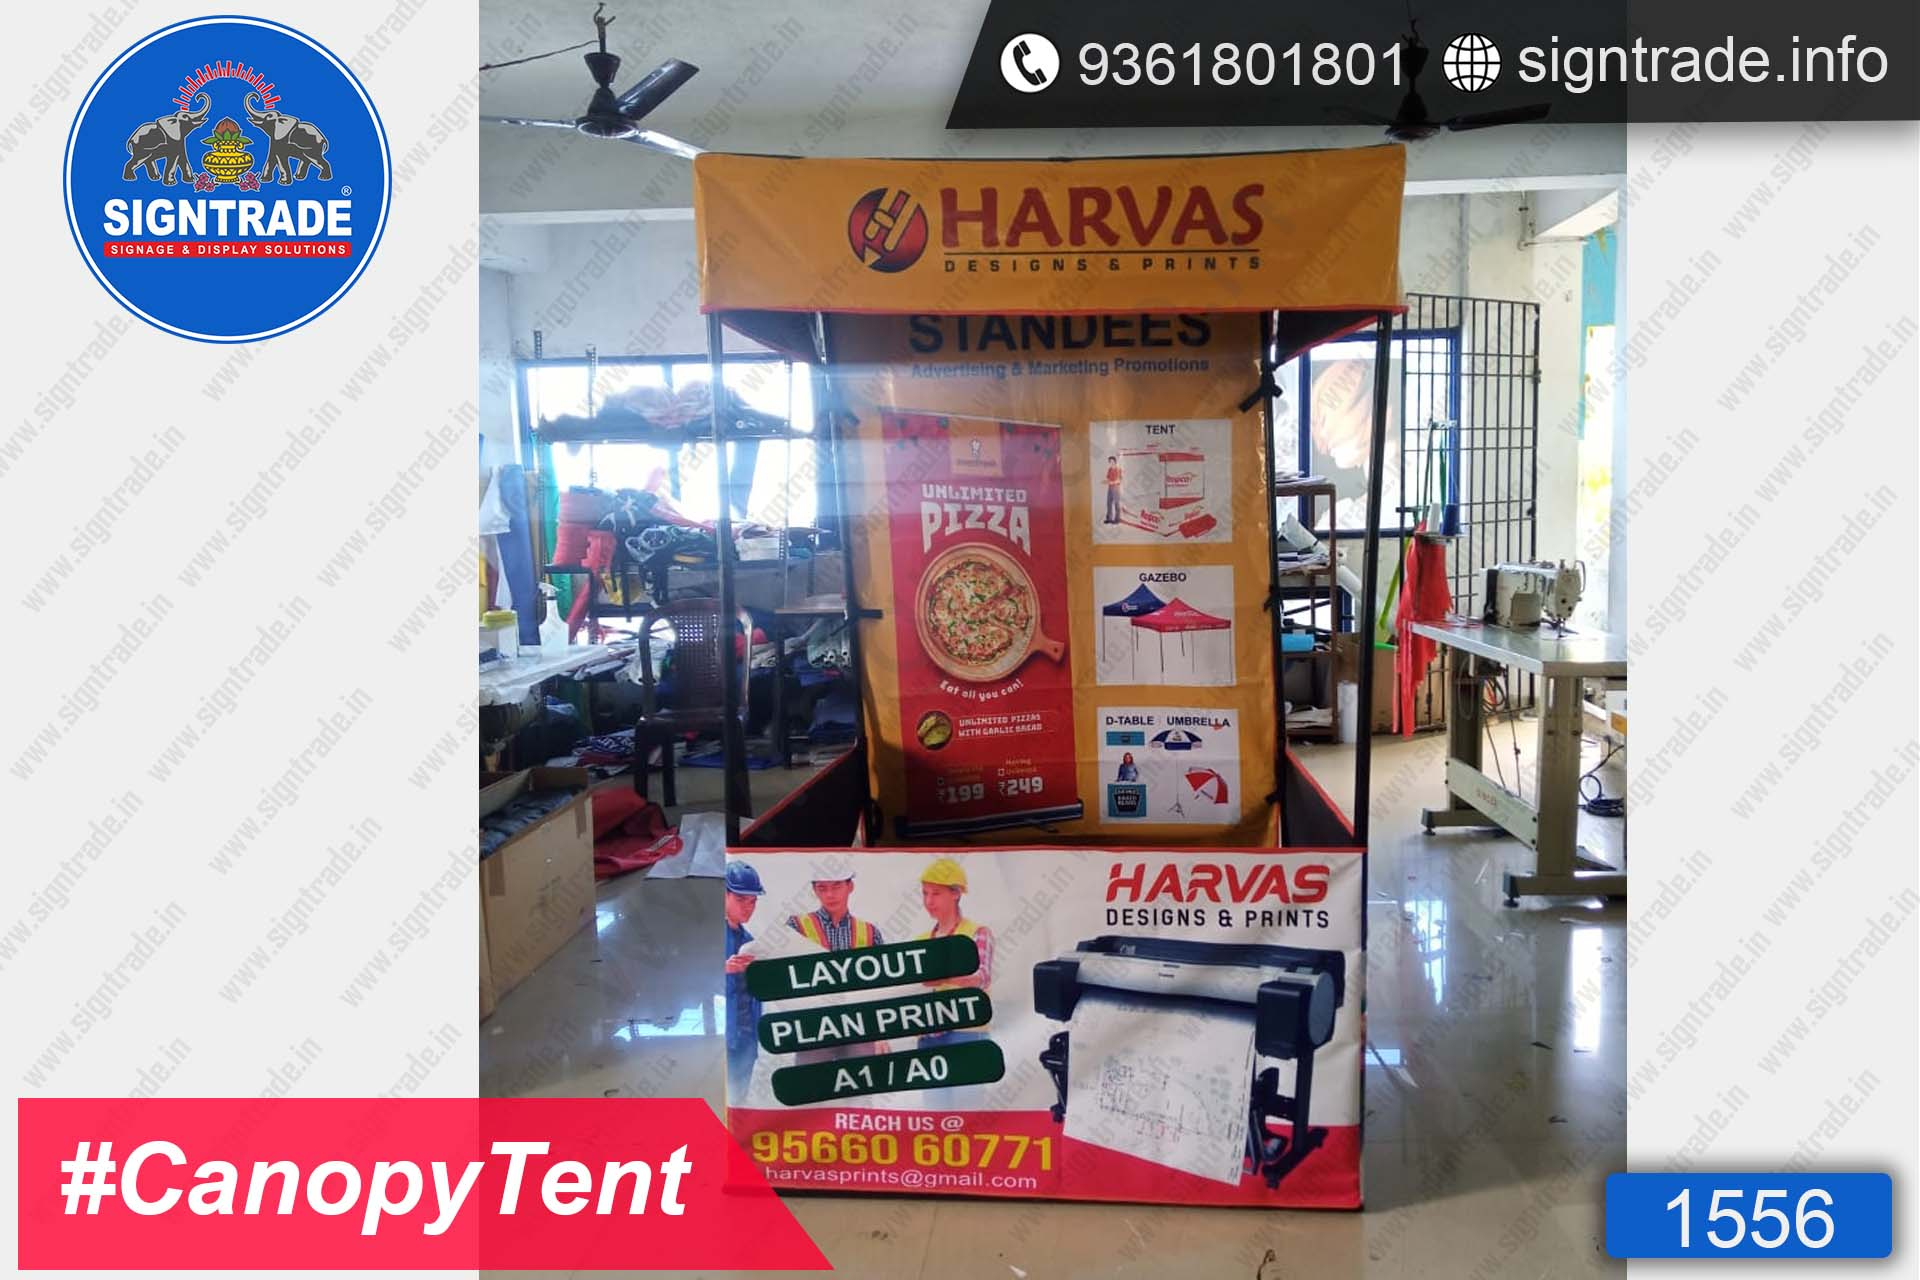 Harvas Designs & Prints - SIGNTRADE - Canopy Tent Manufactures in Chennai